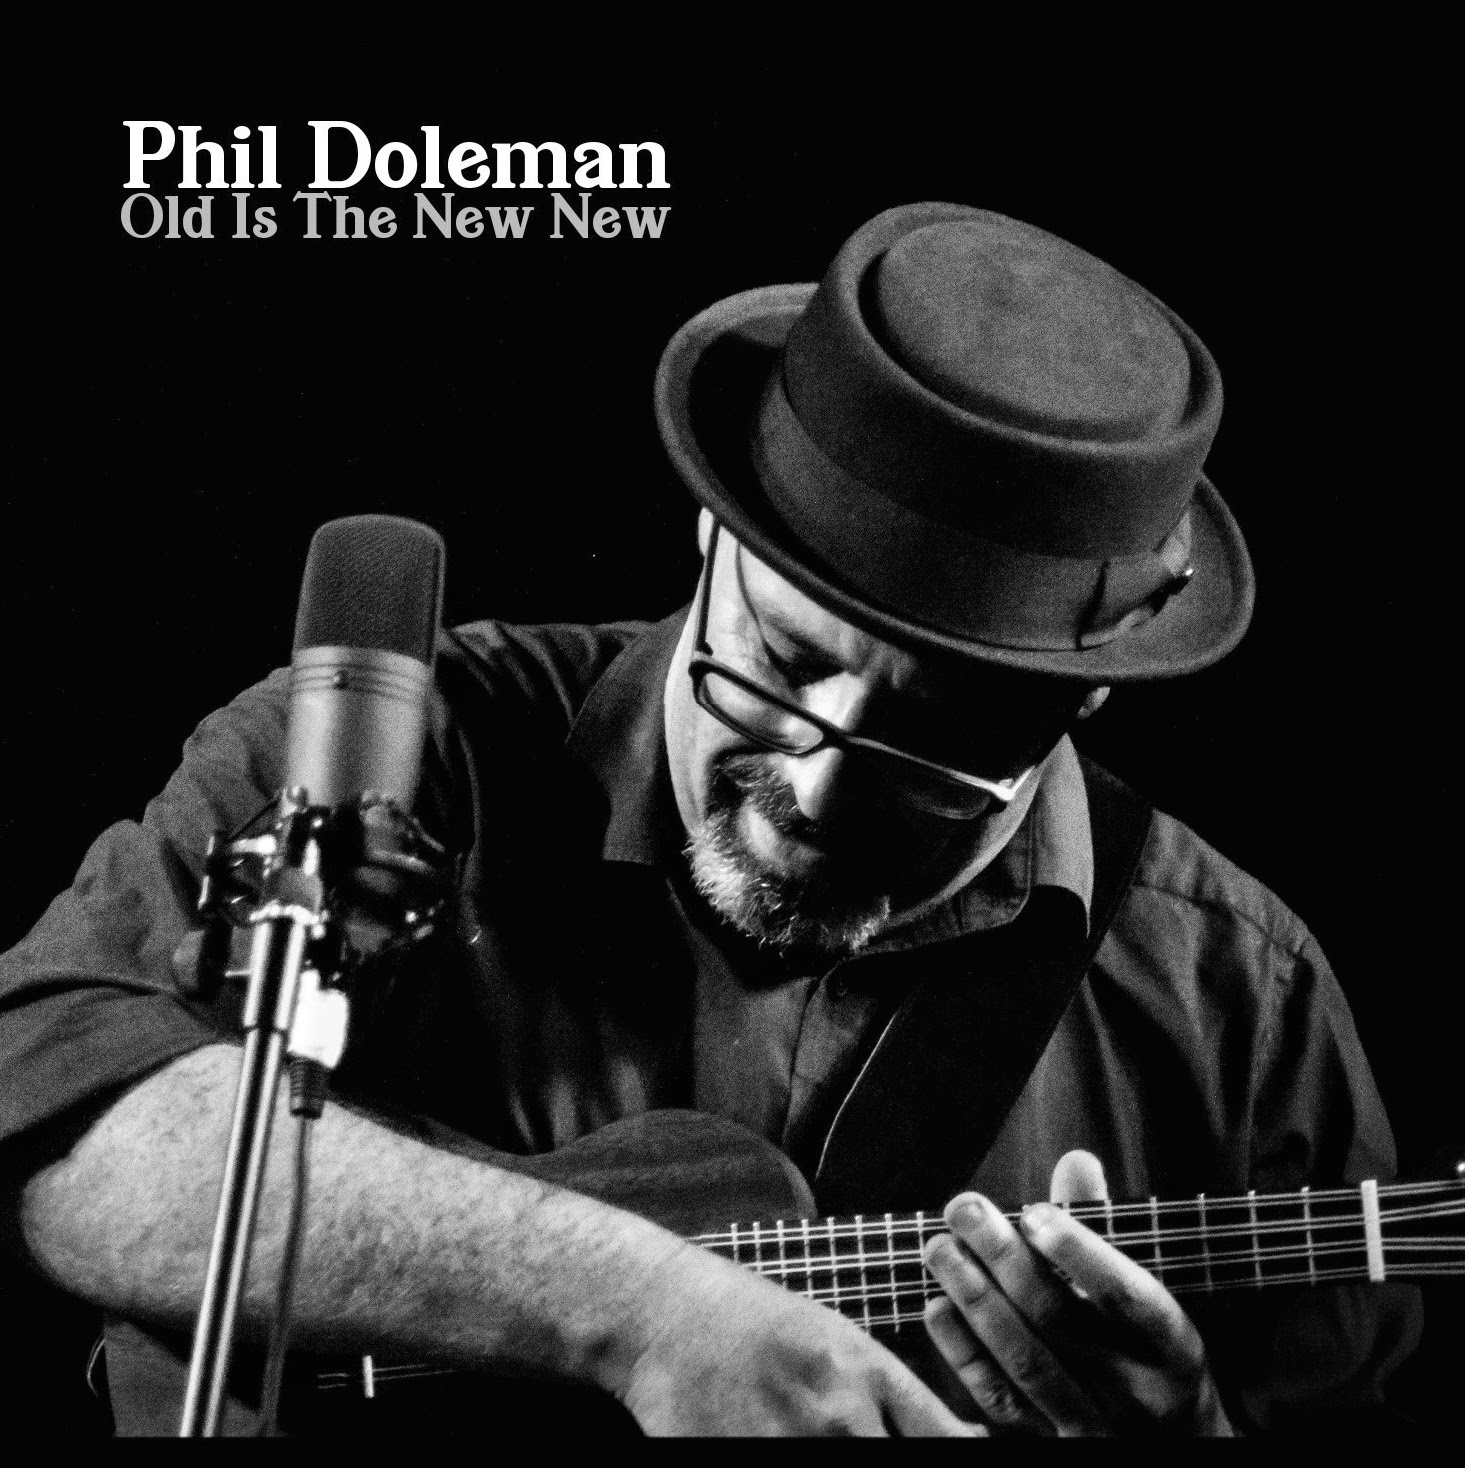 Phil Doleman EP Old Is The New You - ukulele player